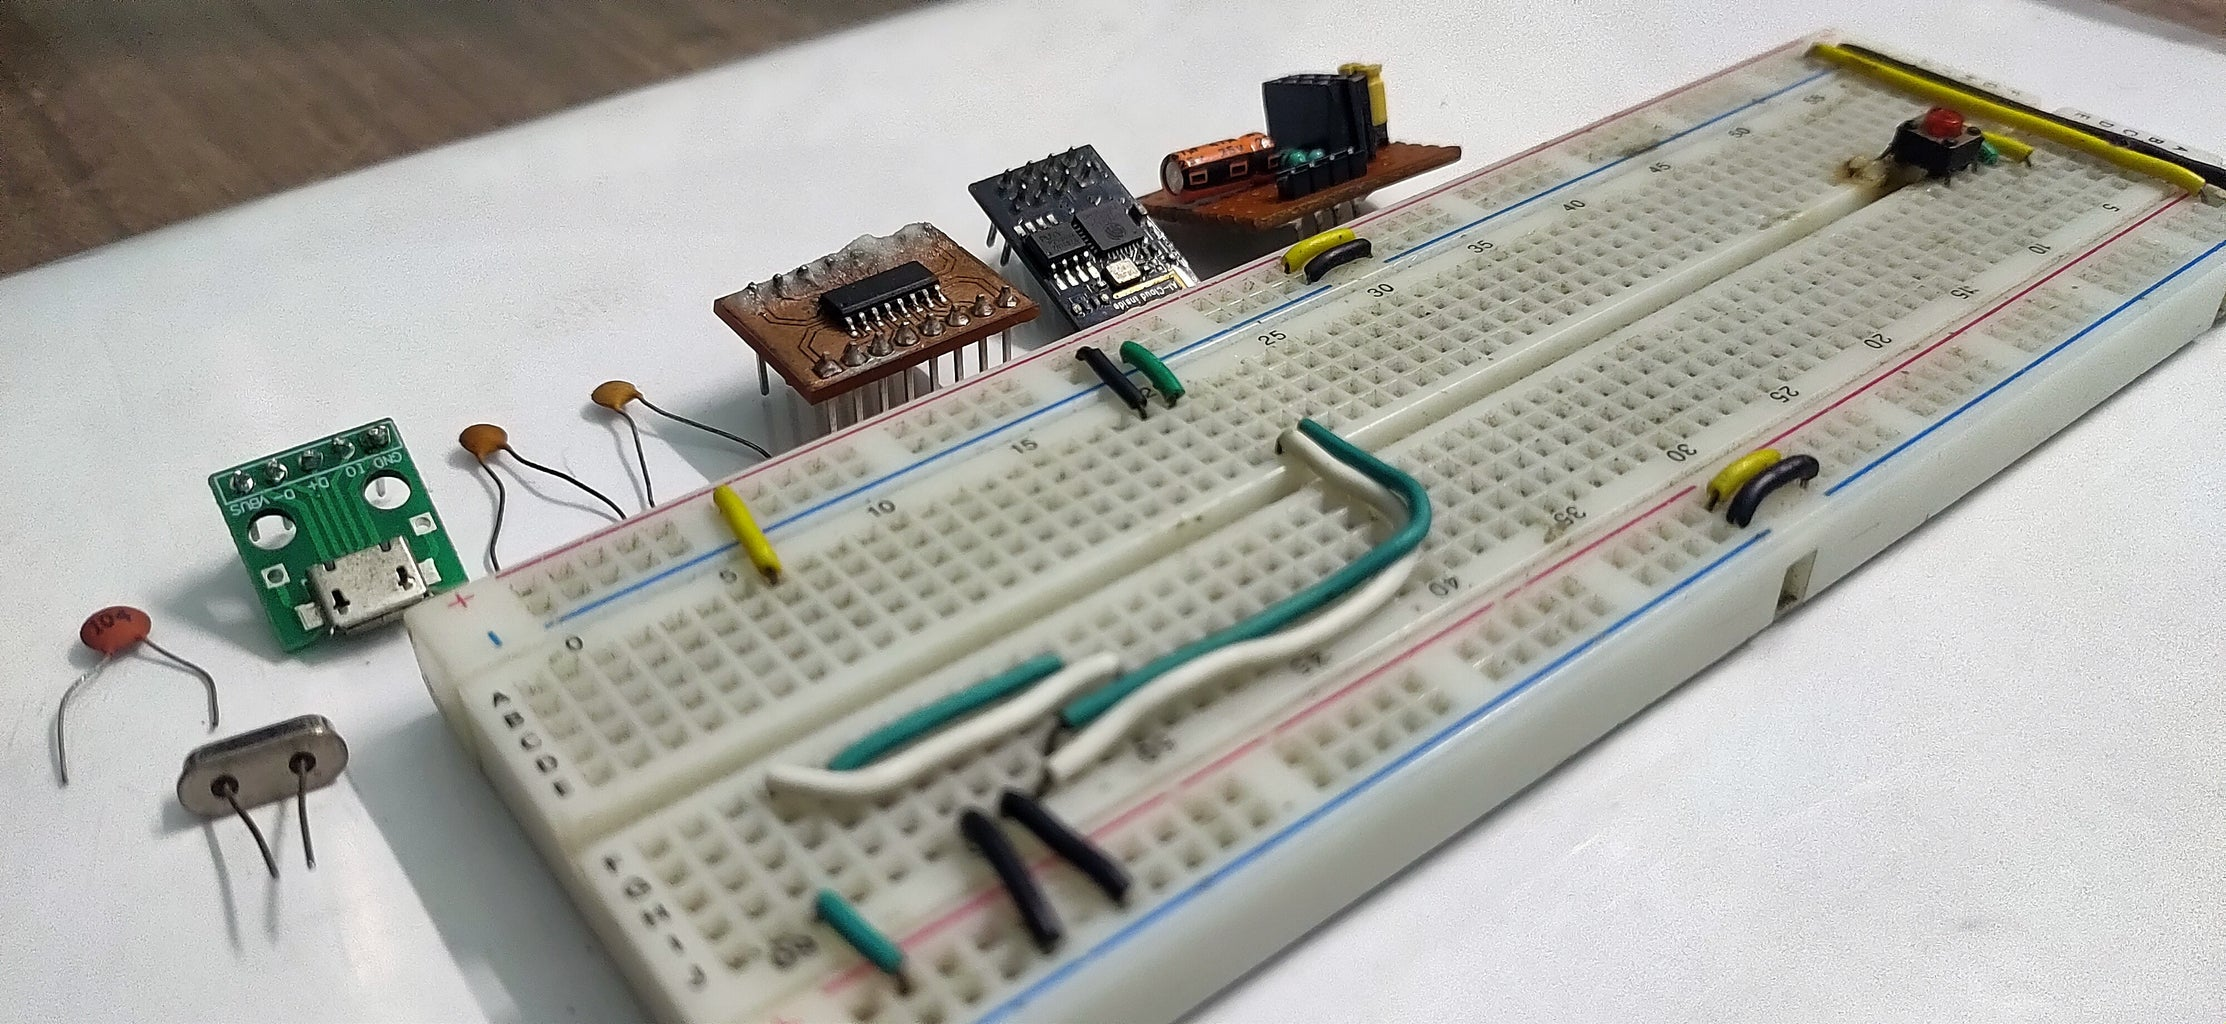 Testing Out the Circuit on Breadboard